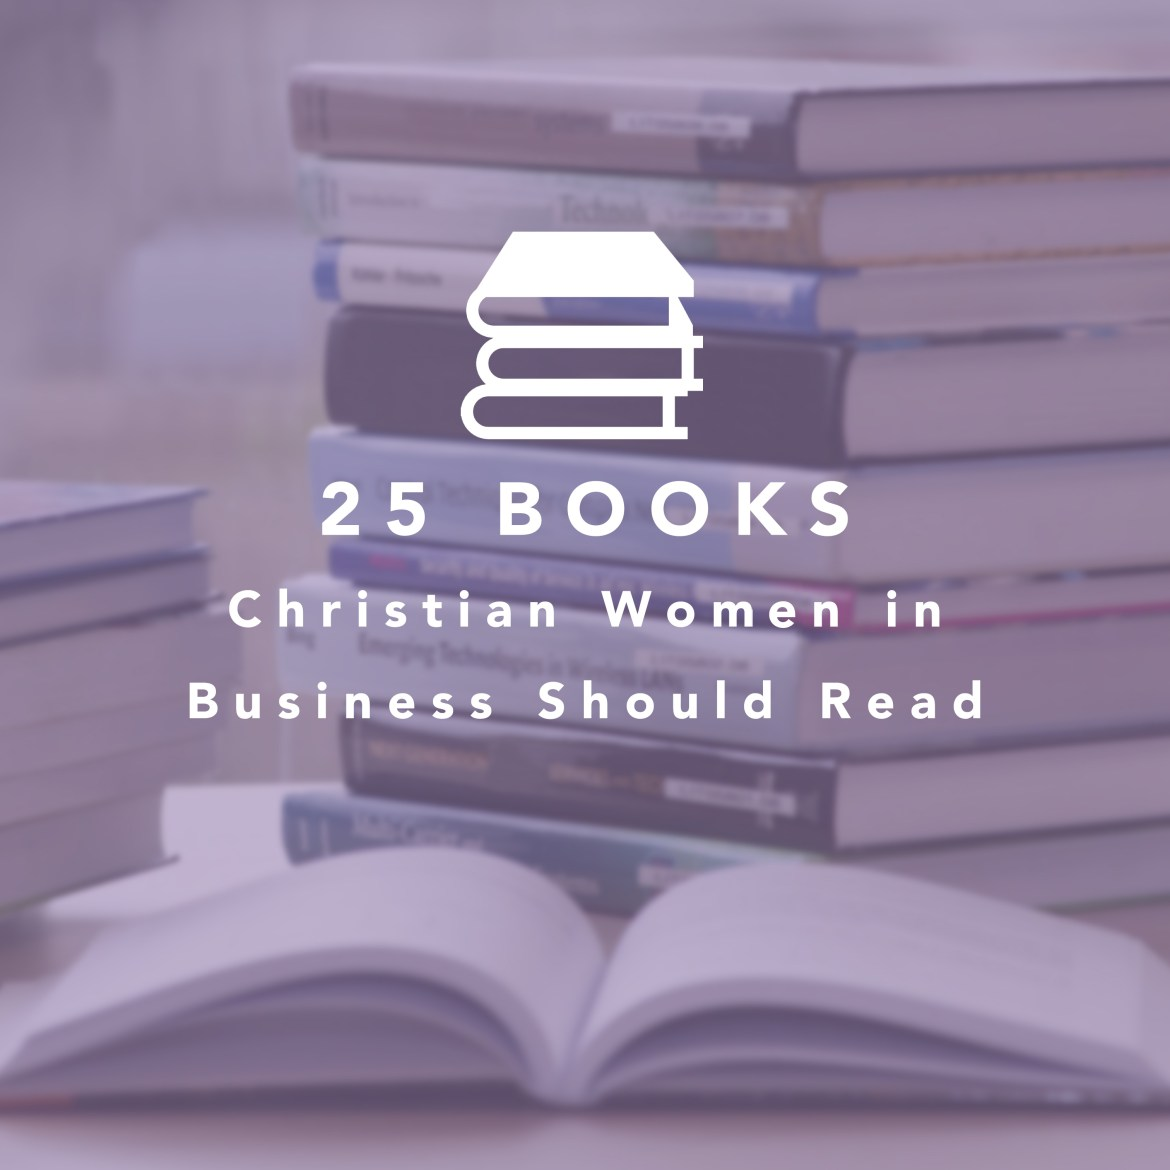 25 Books Christian Business Women Should Read